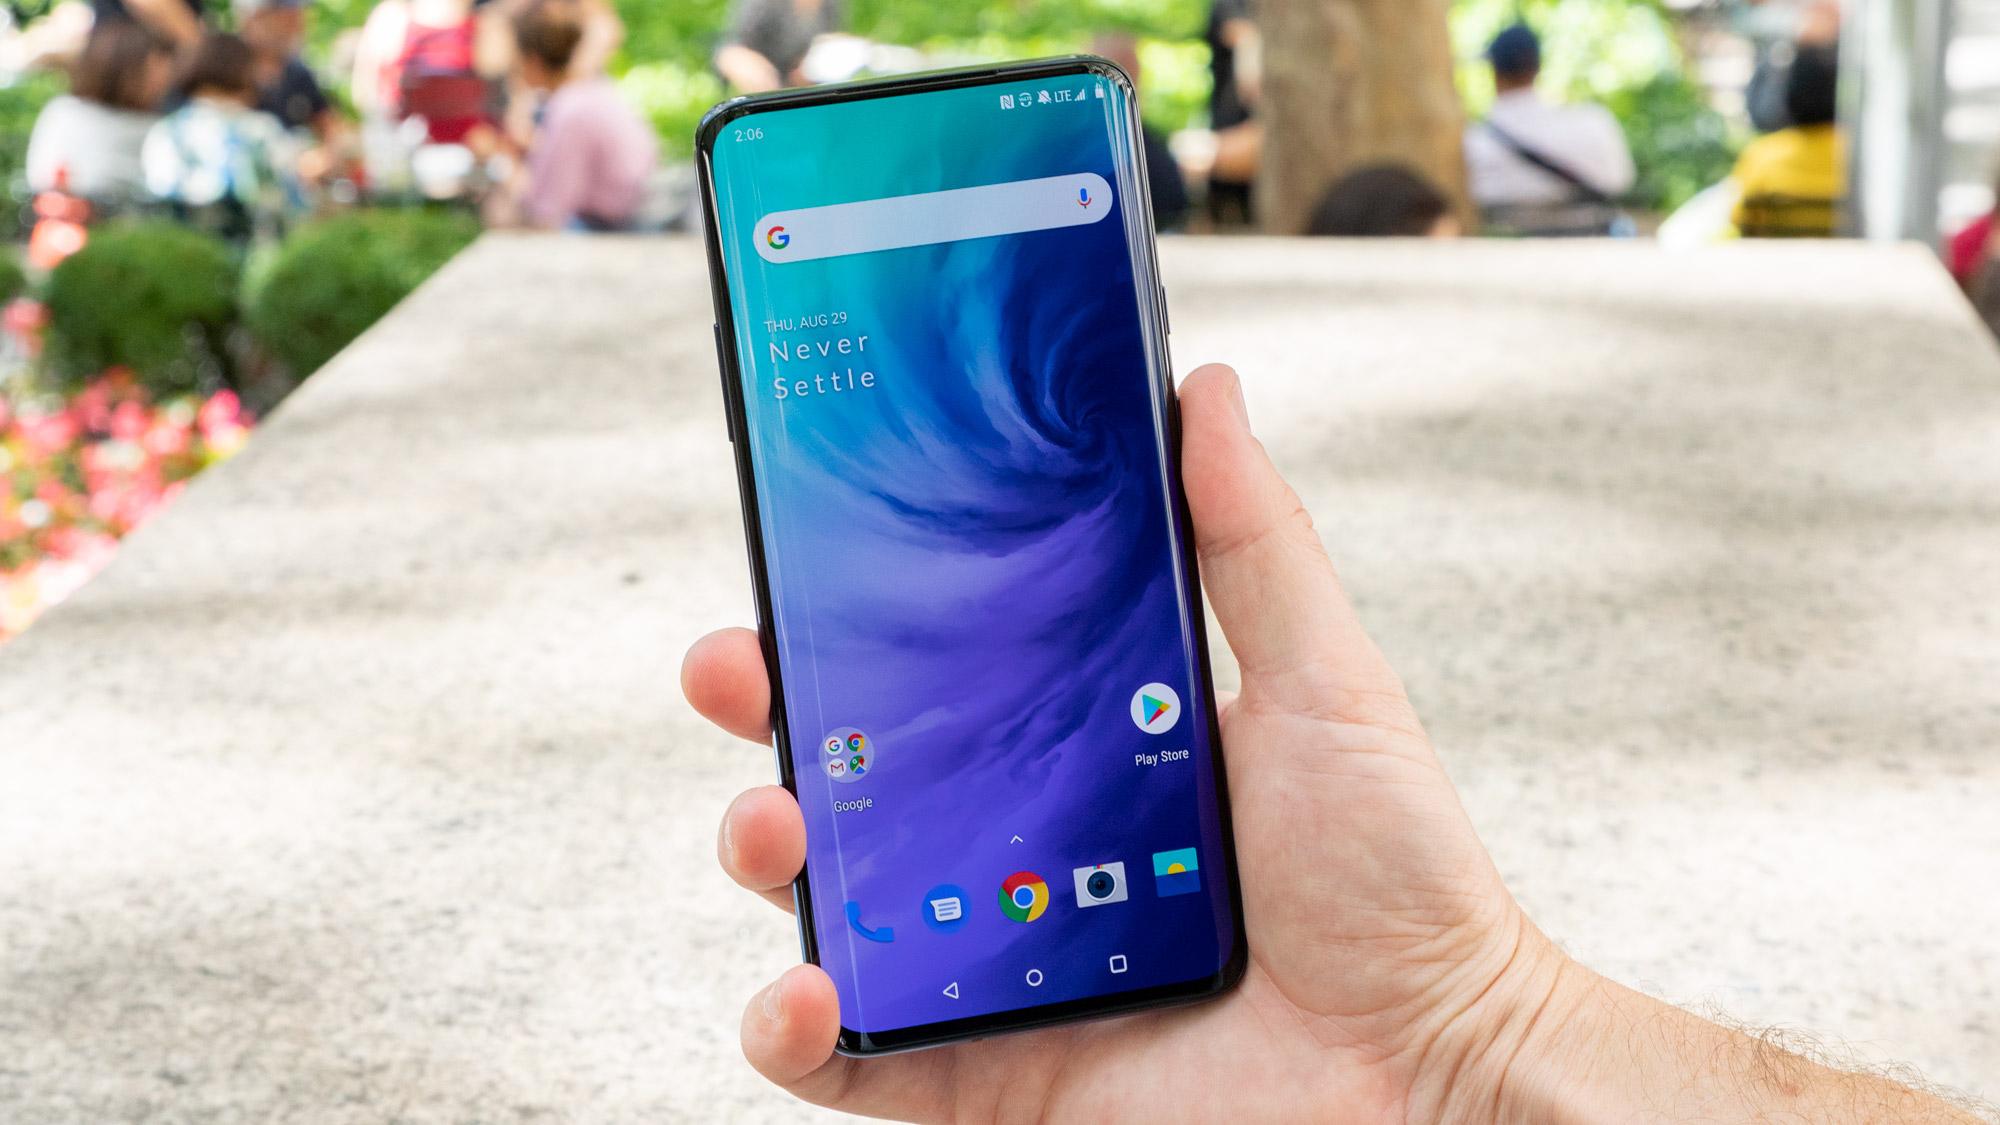 OnePlus 7T might get the 90Hz display without needing the